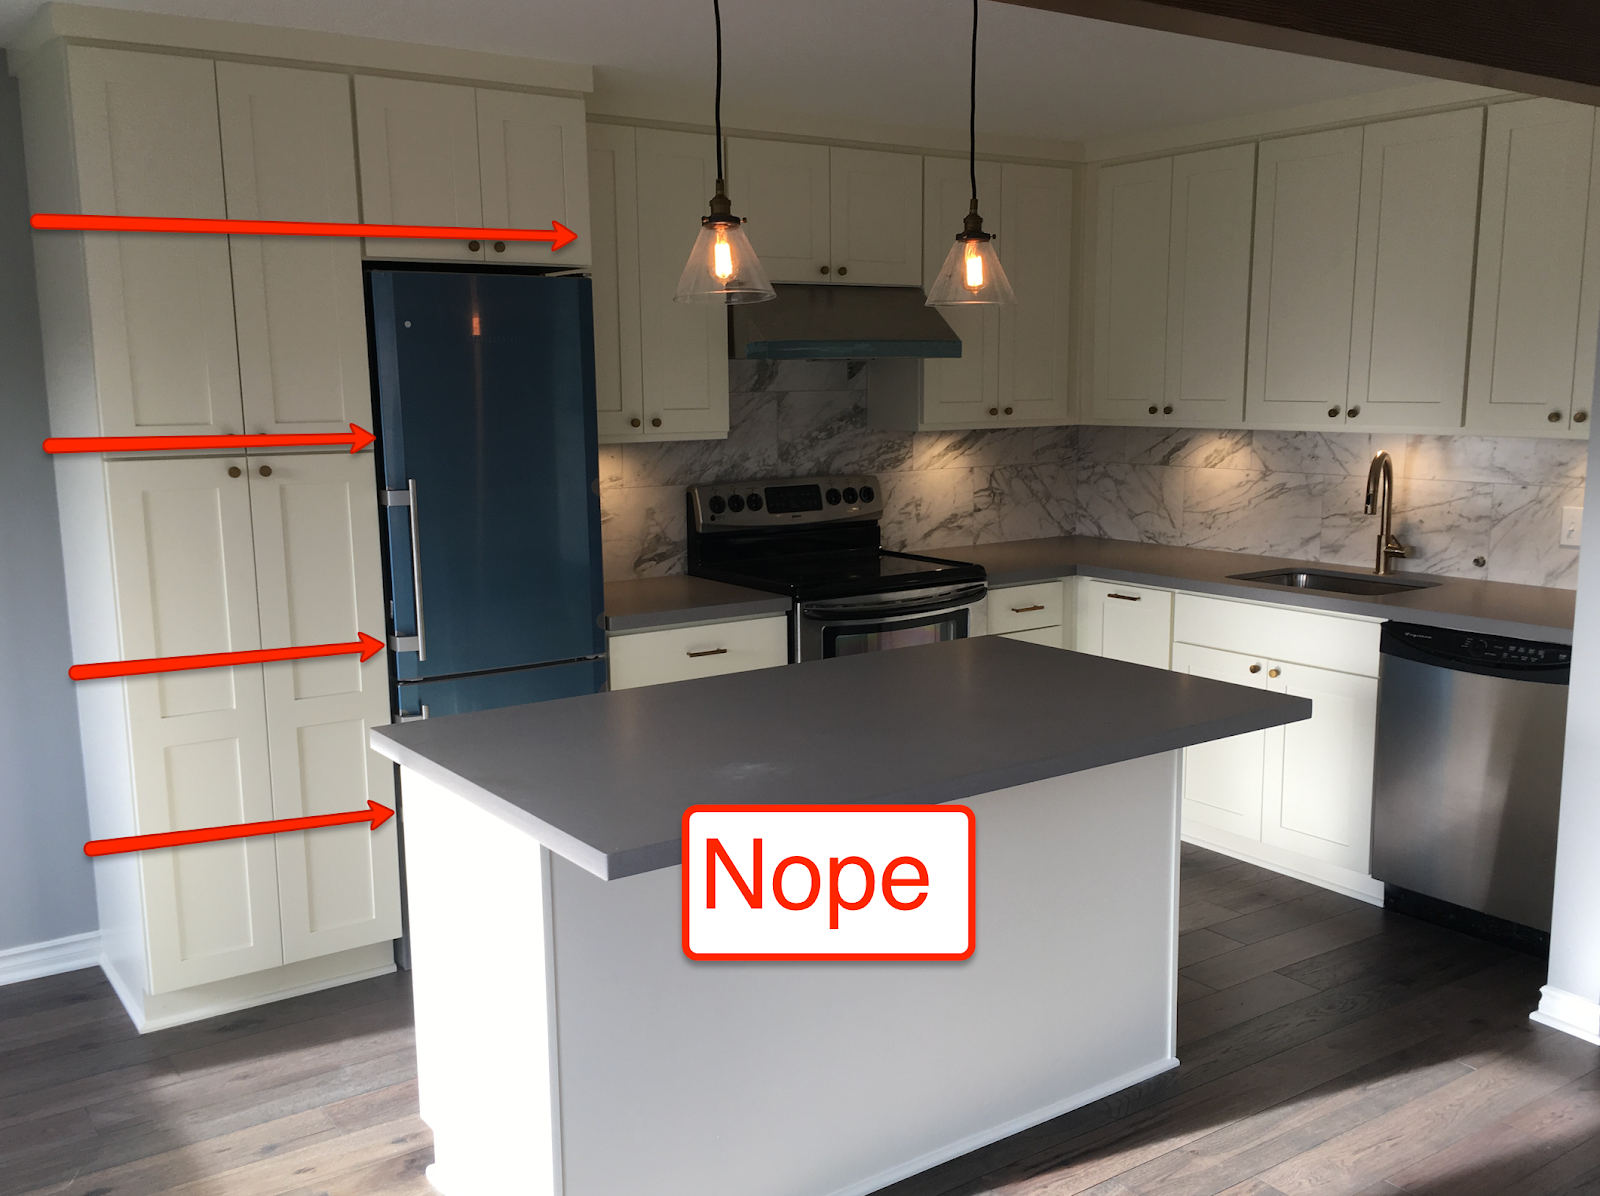 estimating kitchen remodel costs real finance guy rh realfinanceguy com cost of redoing a kitchen uk cost to remodel a kitchen calculator